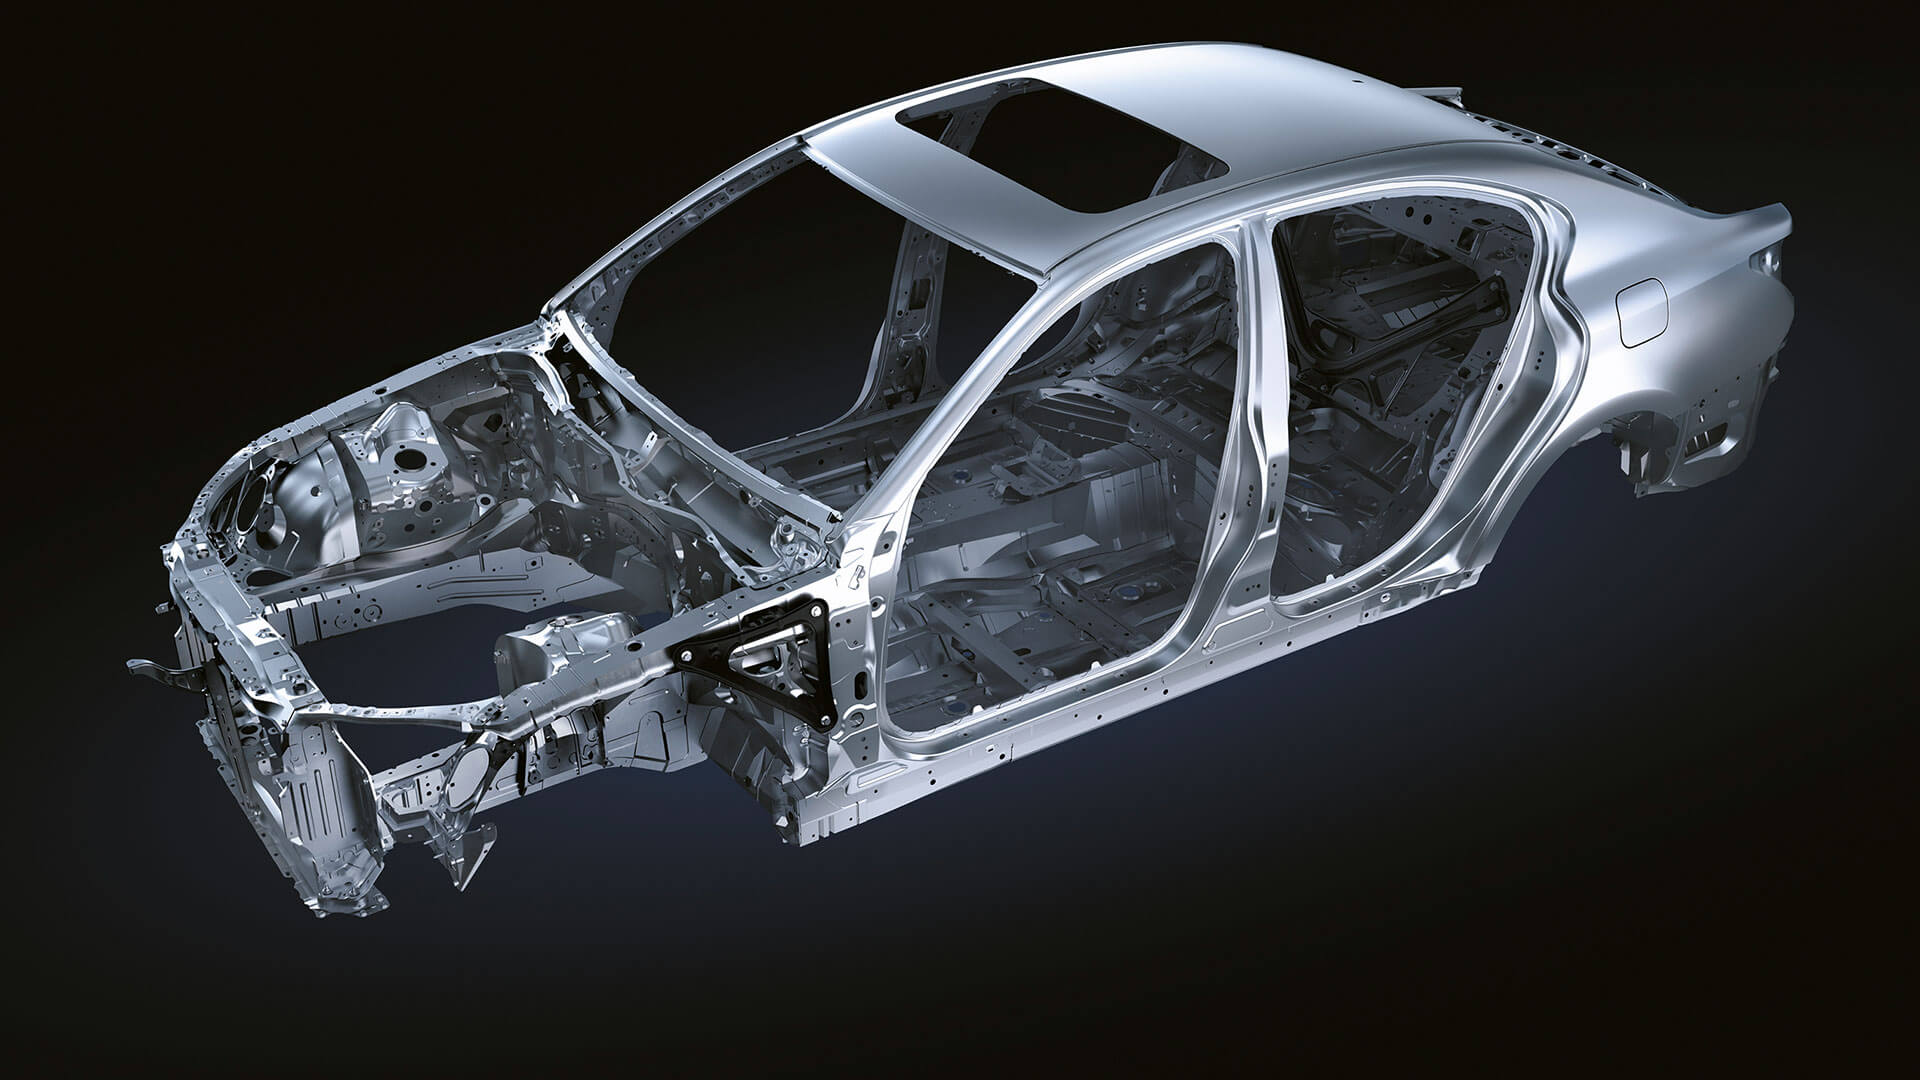 2017 lexus gs f features rigid chassis